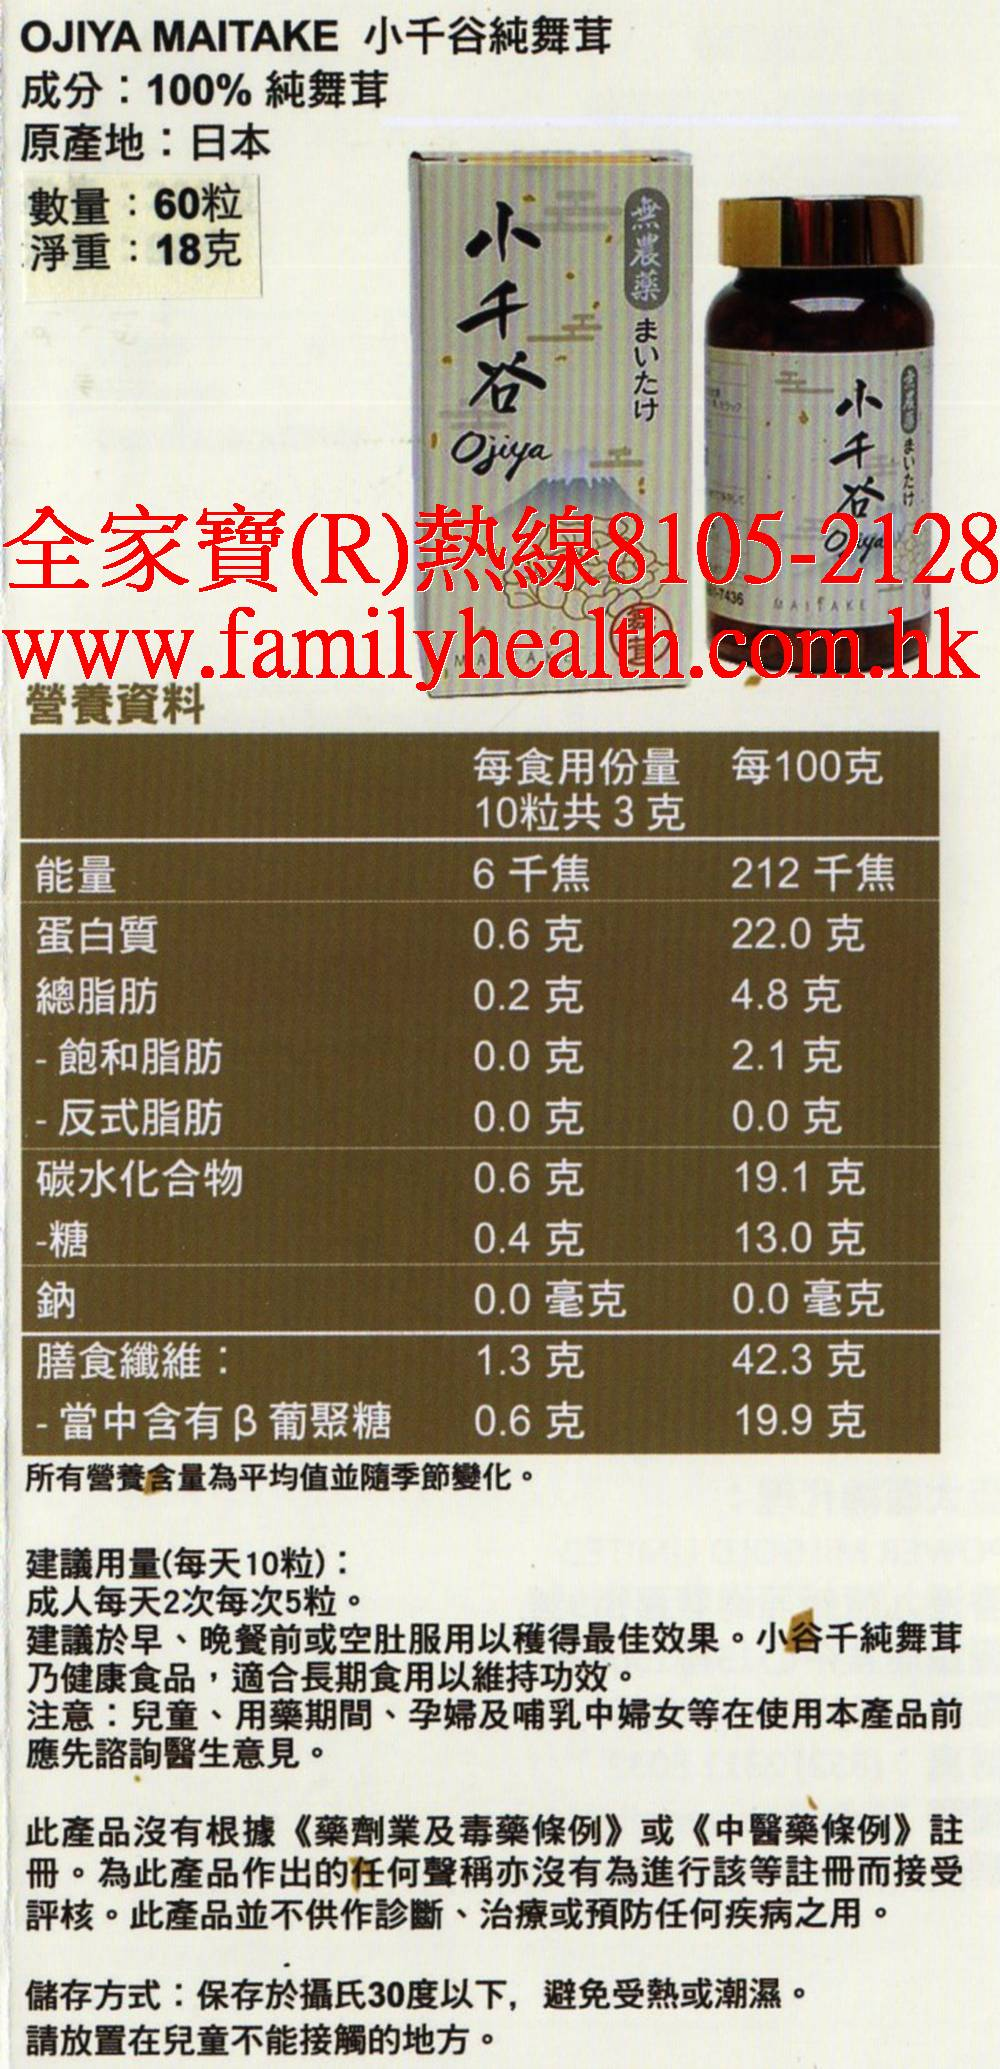 http://www.familyhealth.com.hk/files/full/939_4.jpg